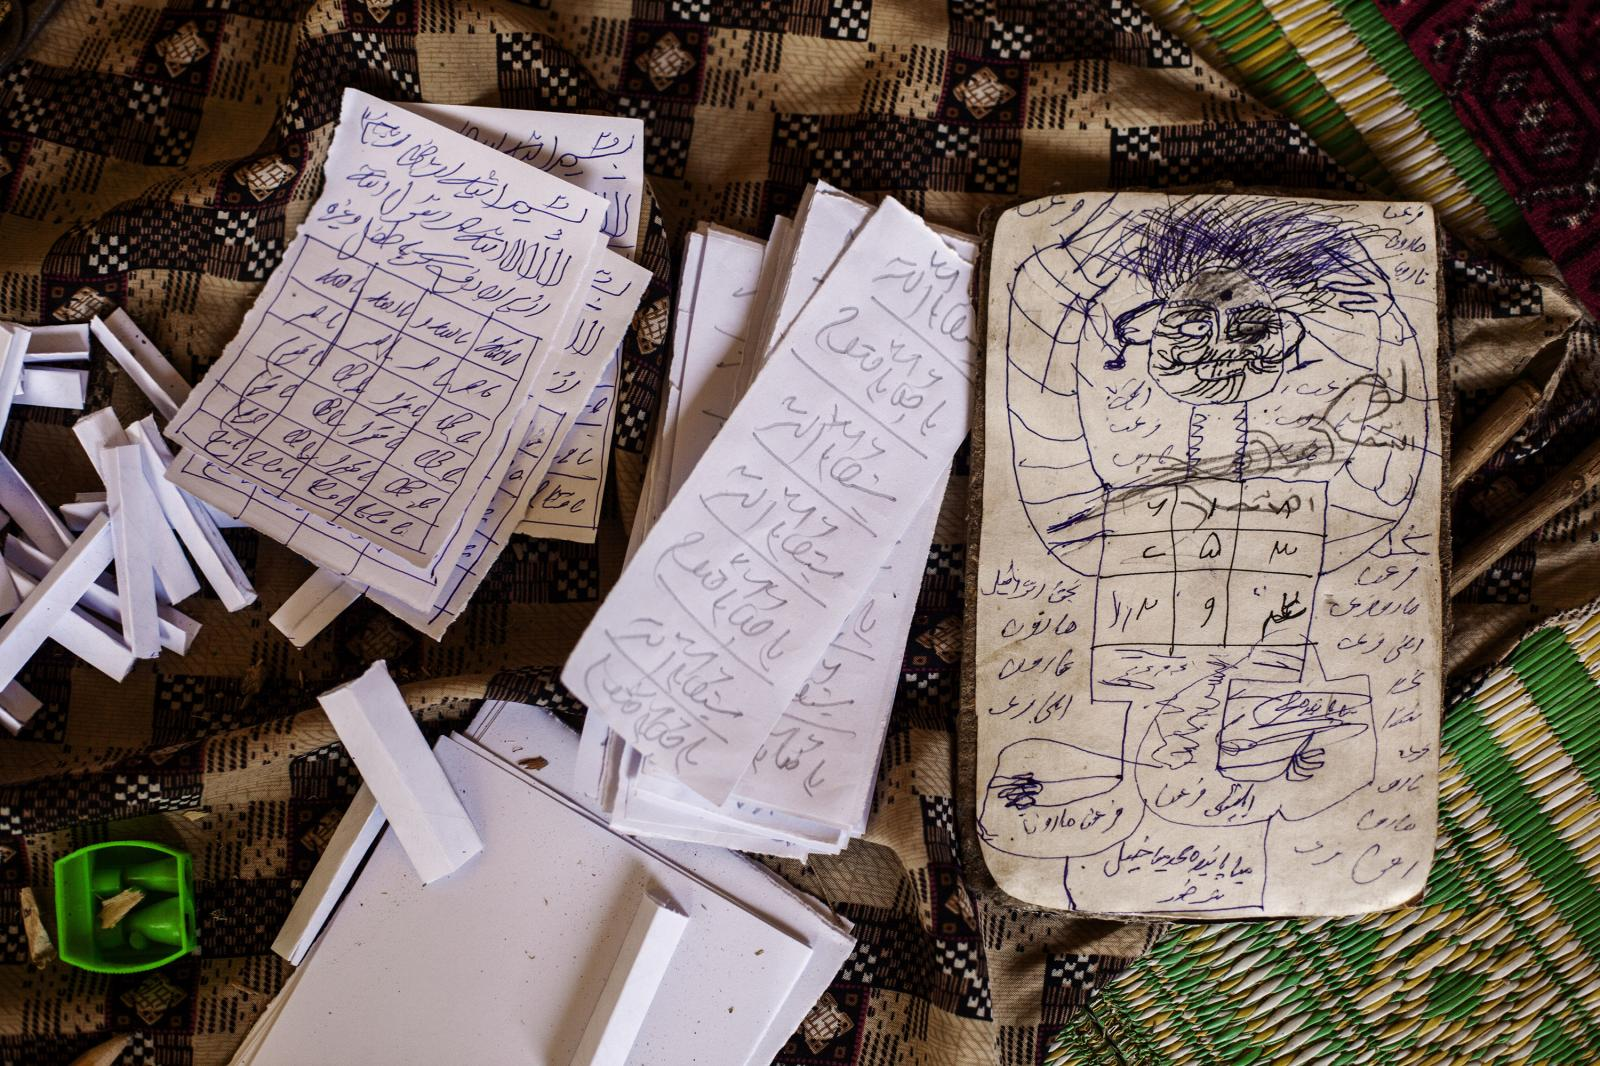 write words (TAWEEZ or SHOHEST) on pieces of paper that are burnt after the healing process is finished. Jajalabad, Afghanistan. April 30th, 2014. Diego Ibarra Sánchez / MeMo The mental health situation in Afghanistan is characterized as an extremely incapacitated mental health care system